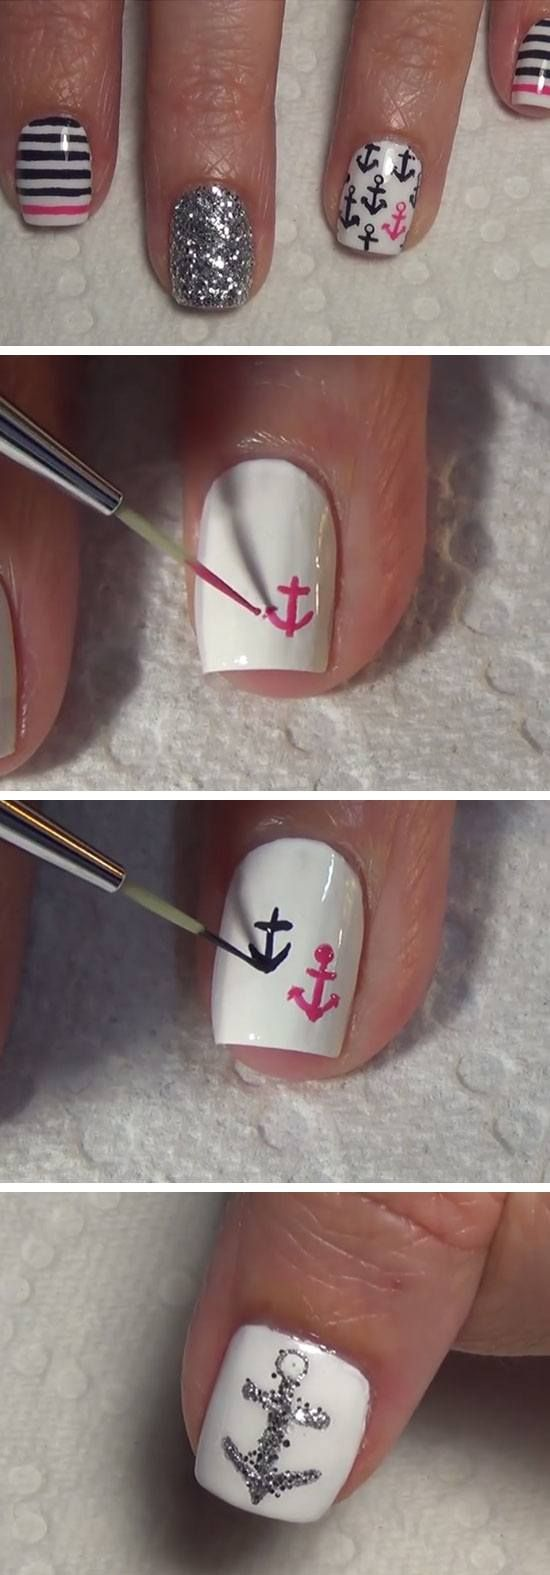 The 93 best Nails images on Pinterest | Nail scissors, Teen nail ...